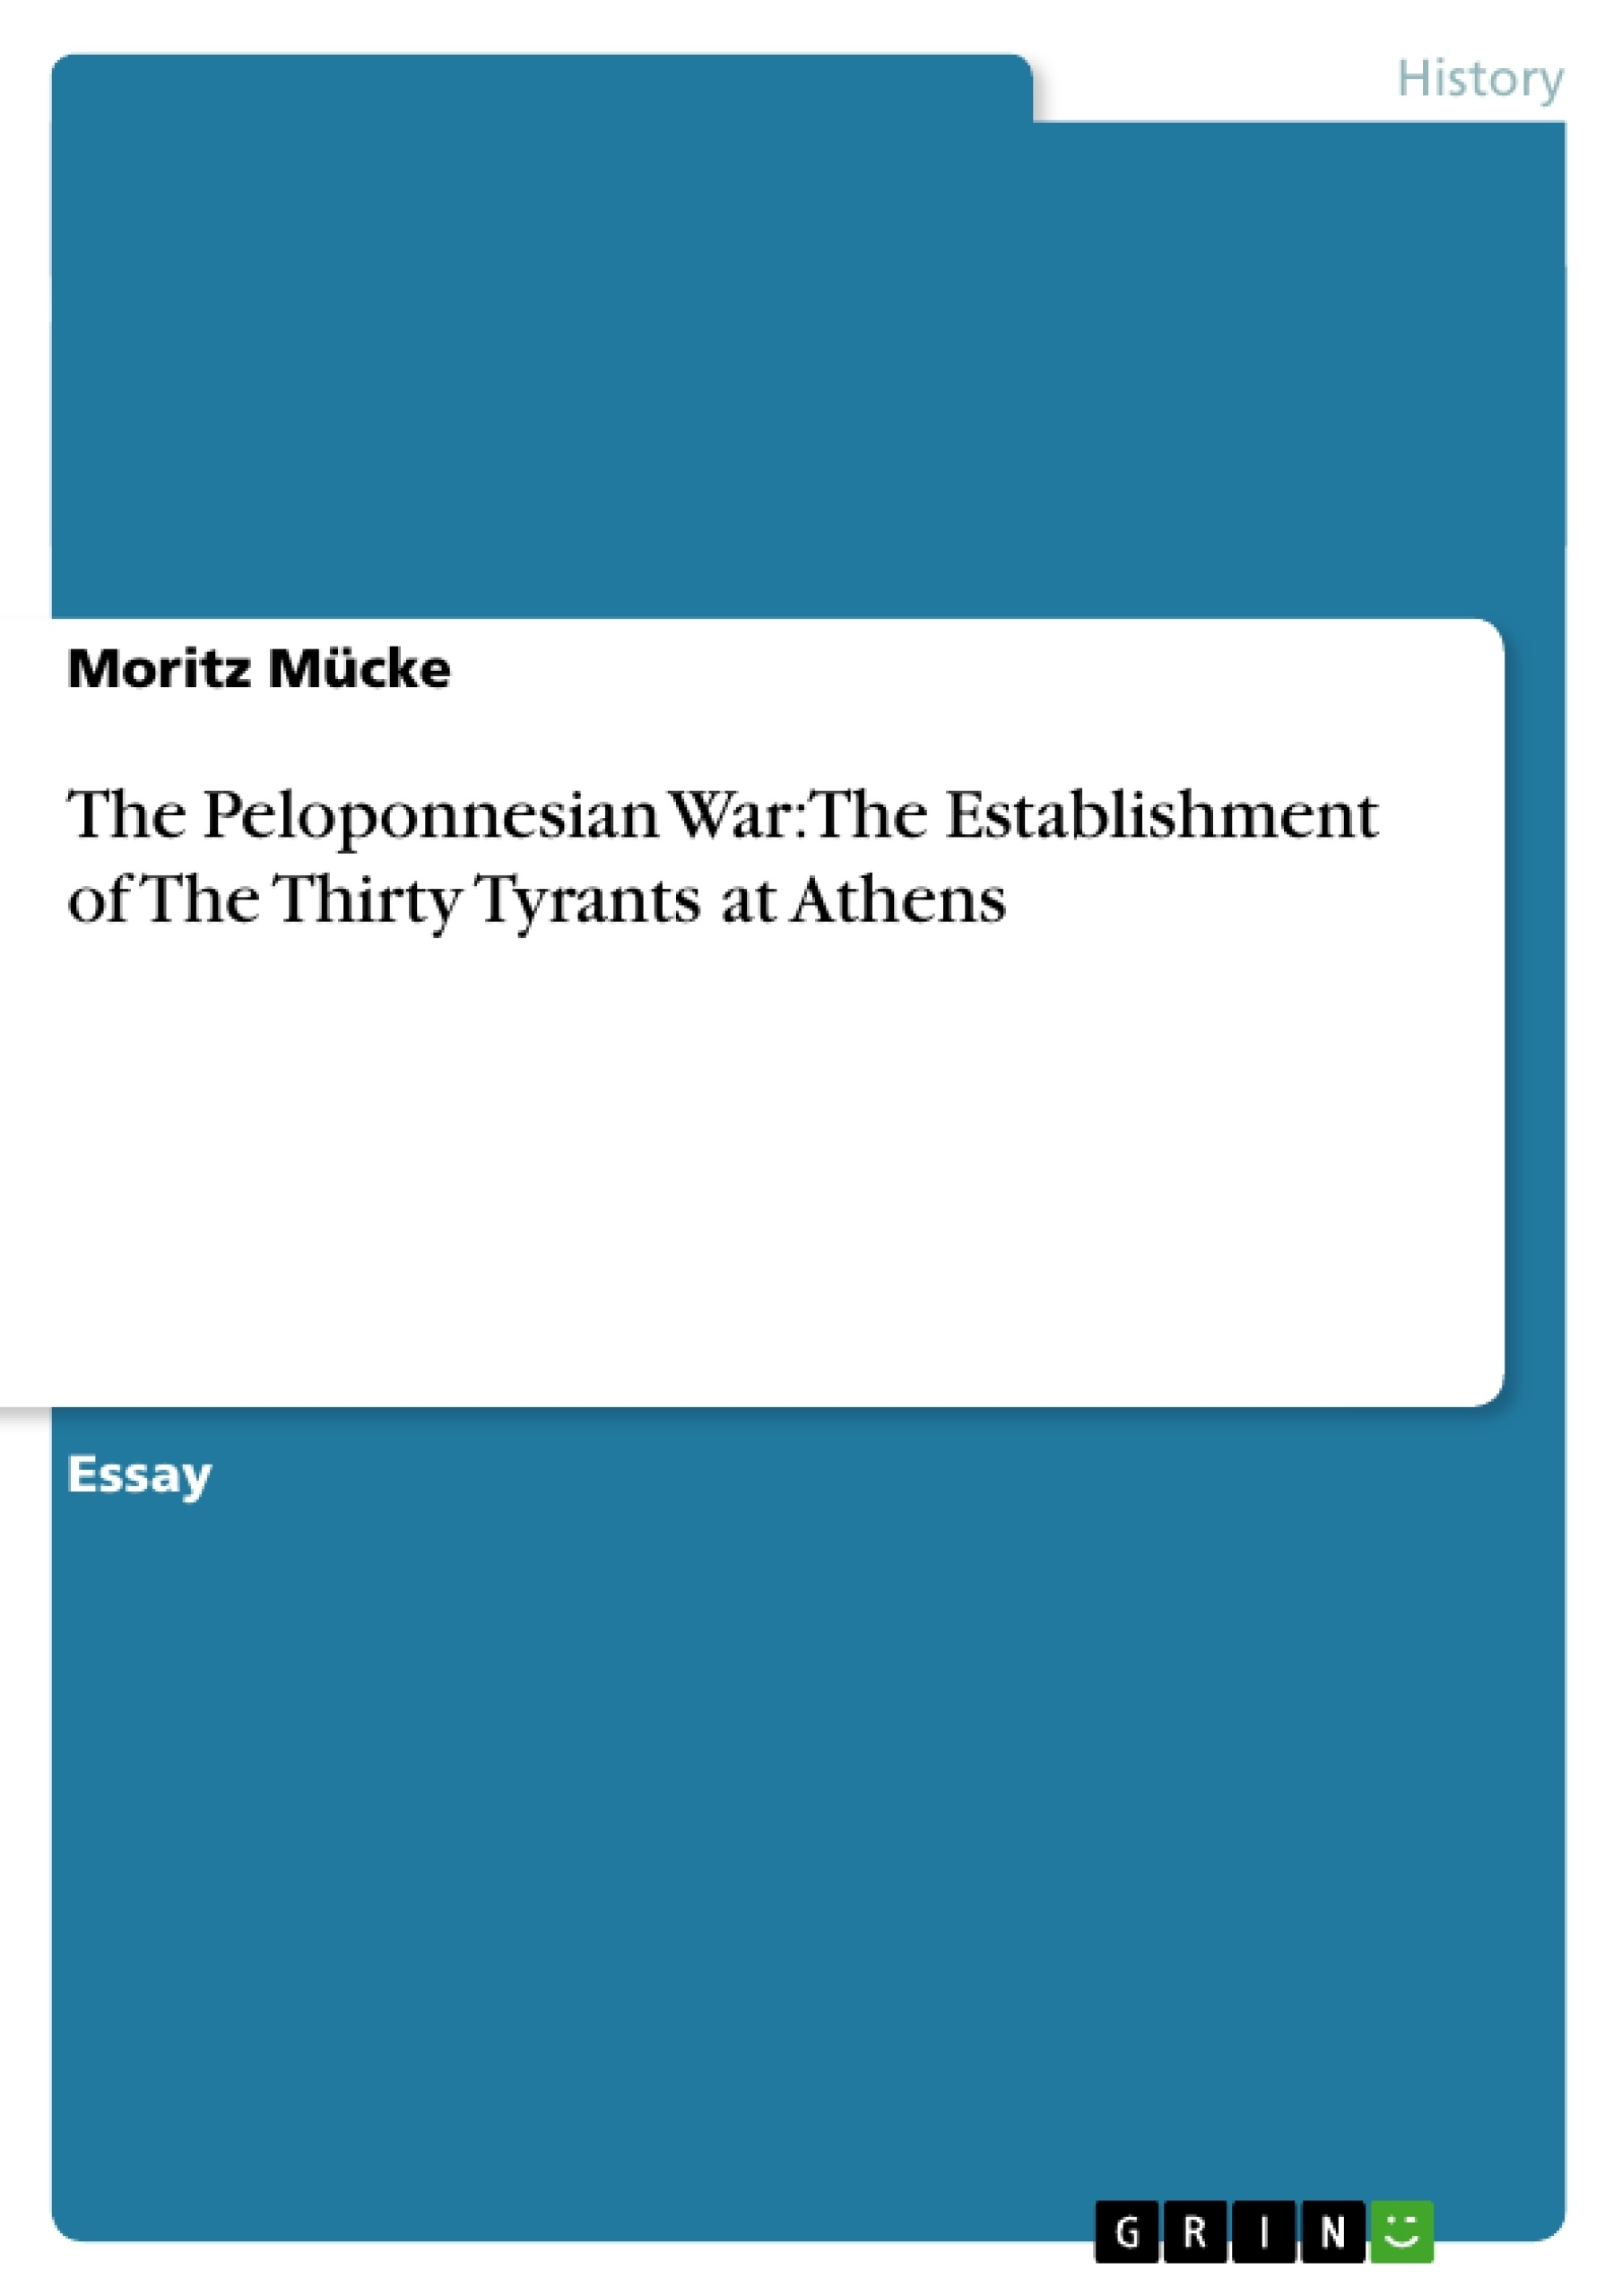 Title: The Peloponnesian War: The Establishment of The Thirty Tyrants at Athens